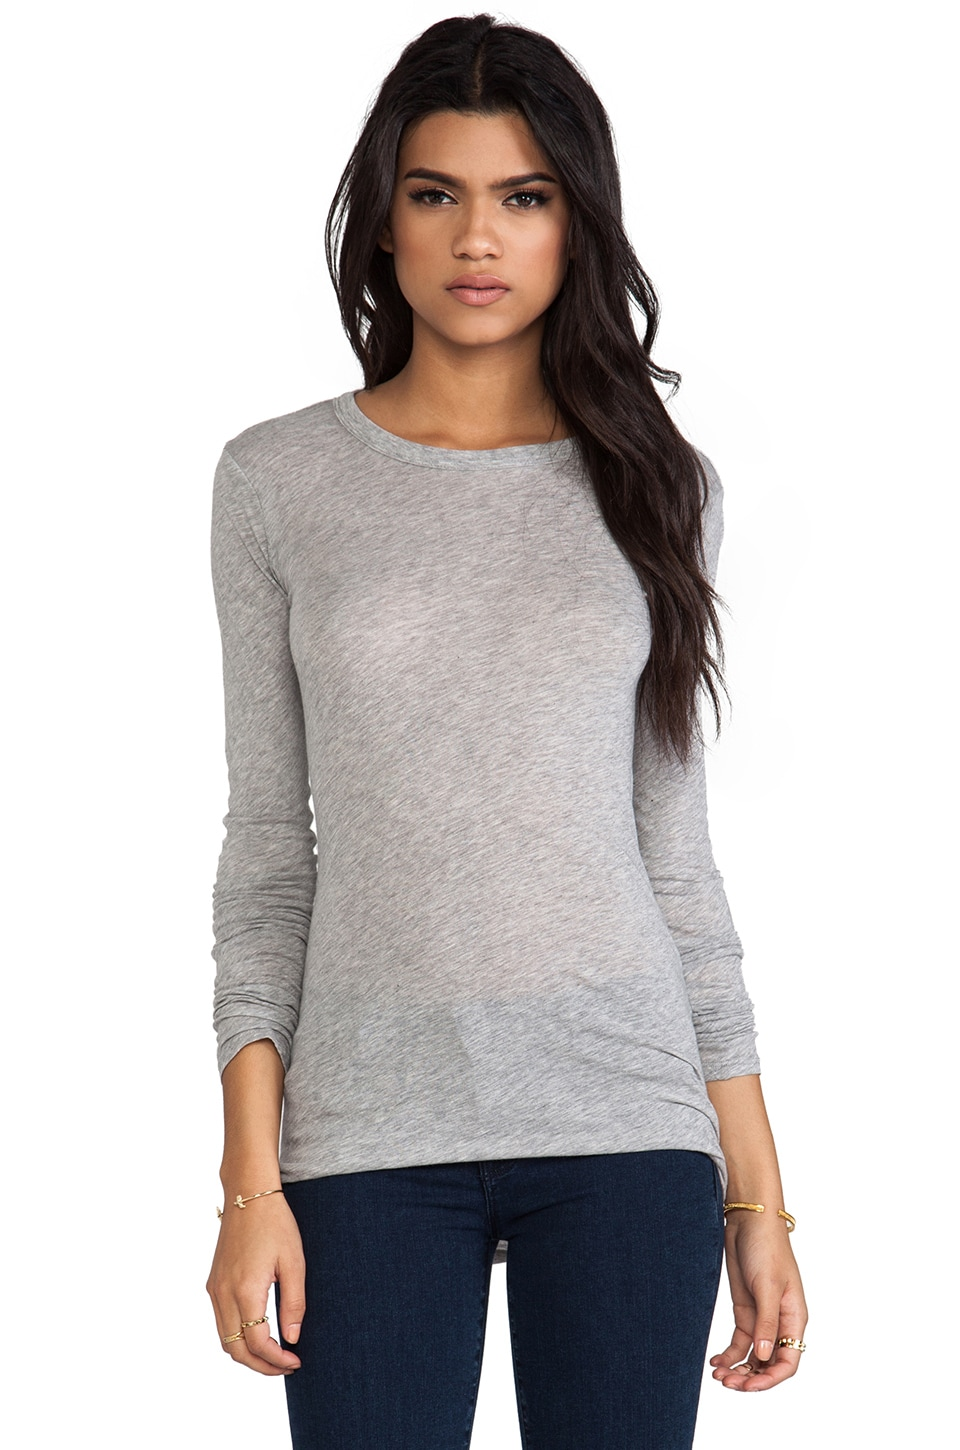 Enza Costa Bold Long Sleeve Crew Tee in Light Heather Grey